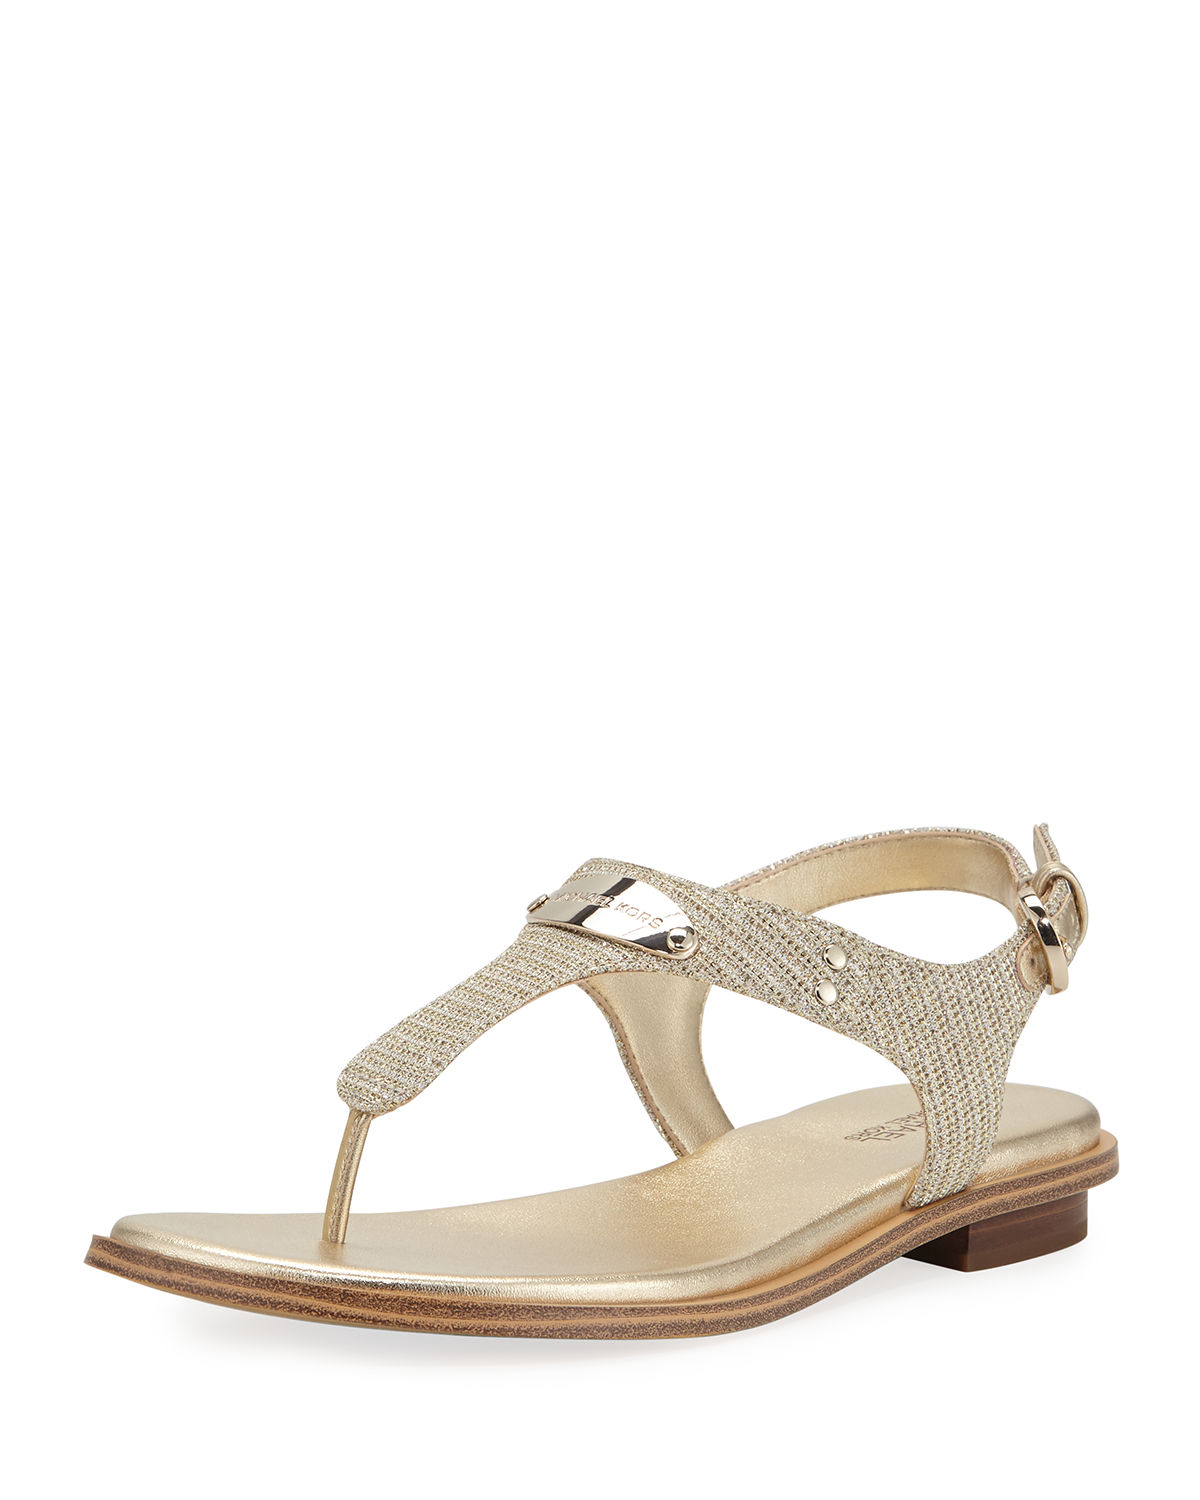 6141abcf2e0 Michael Michael Kors Mk Plate Metallic Thong Sandals In White Champagne